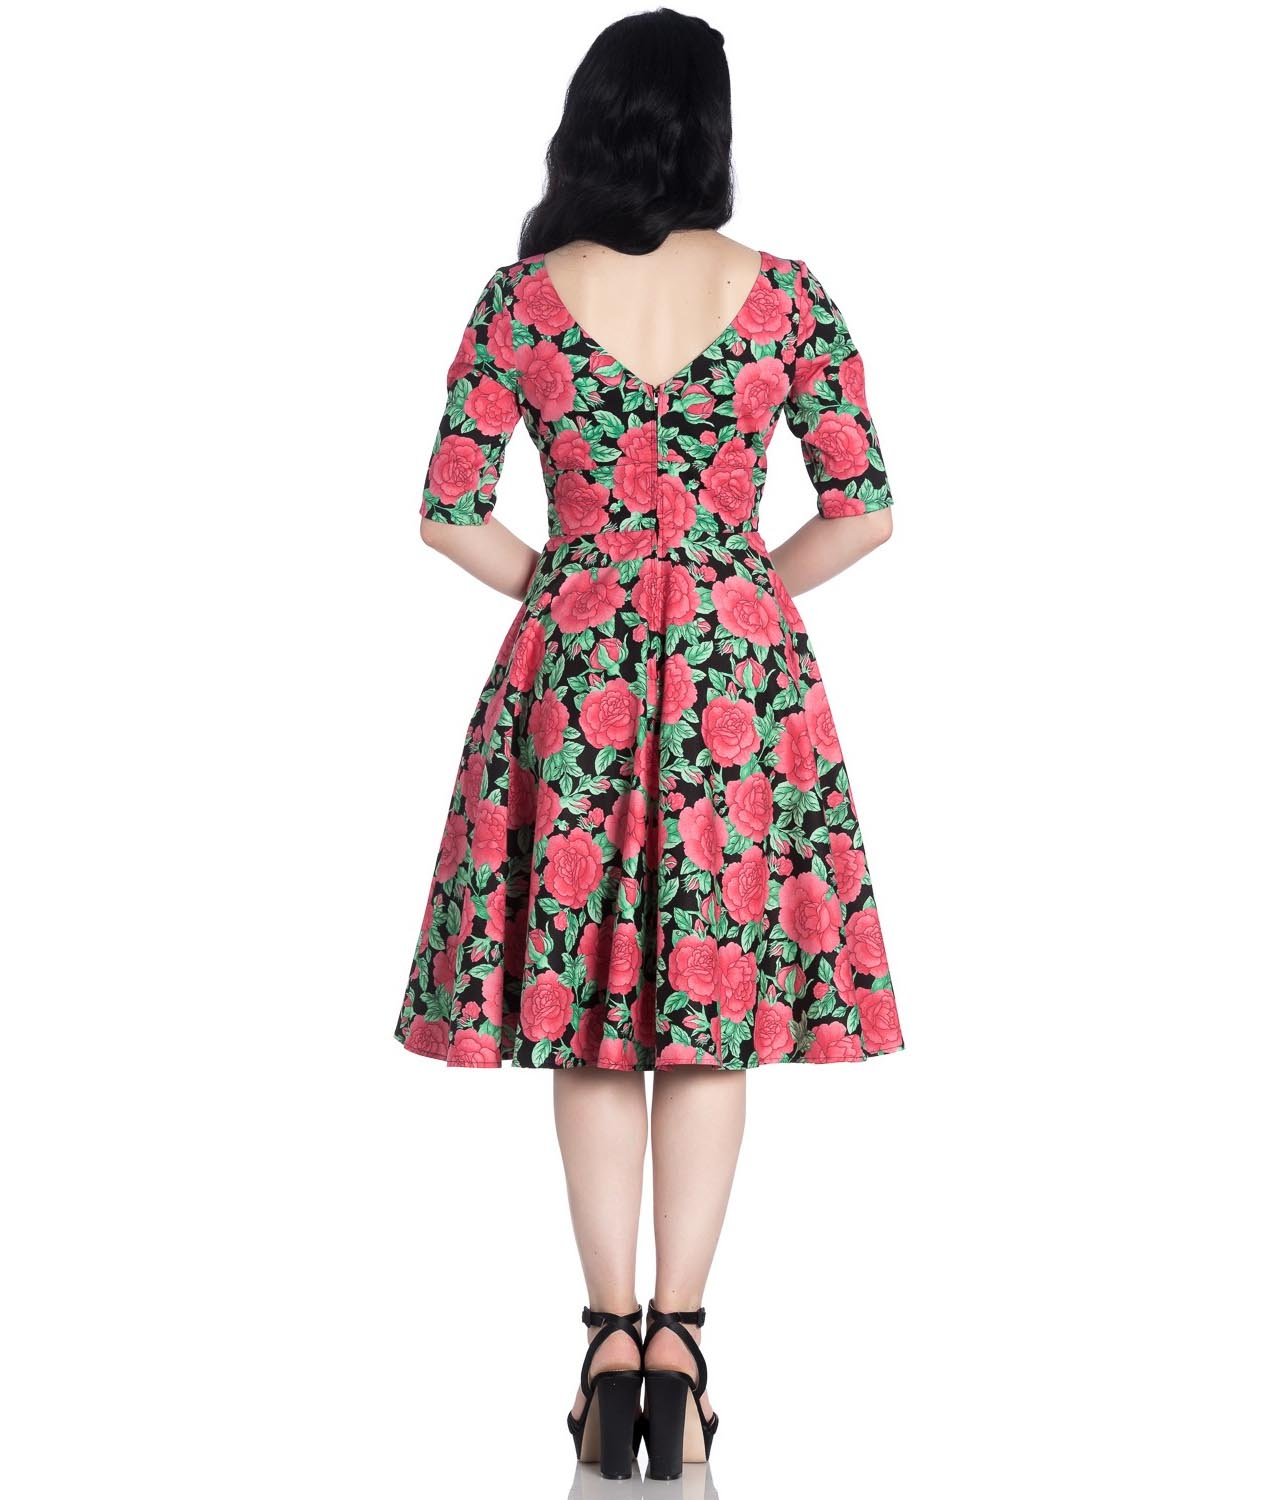 Hell-Bunny-40s-50s-Black-Pin-Up-Vintage-Dress-DARCY-Pink-Roses-All-Sizes thumbnail 13